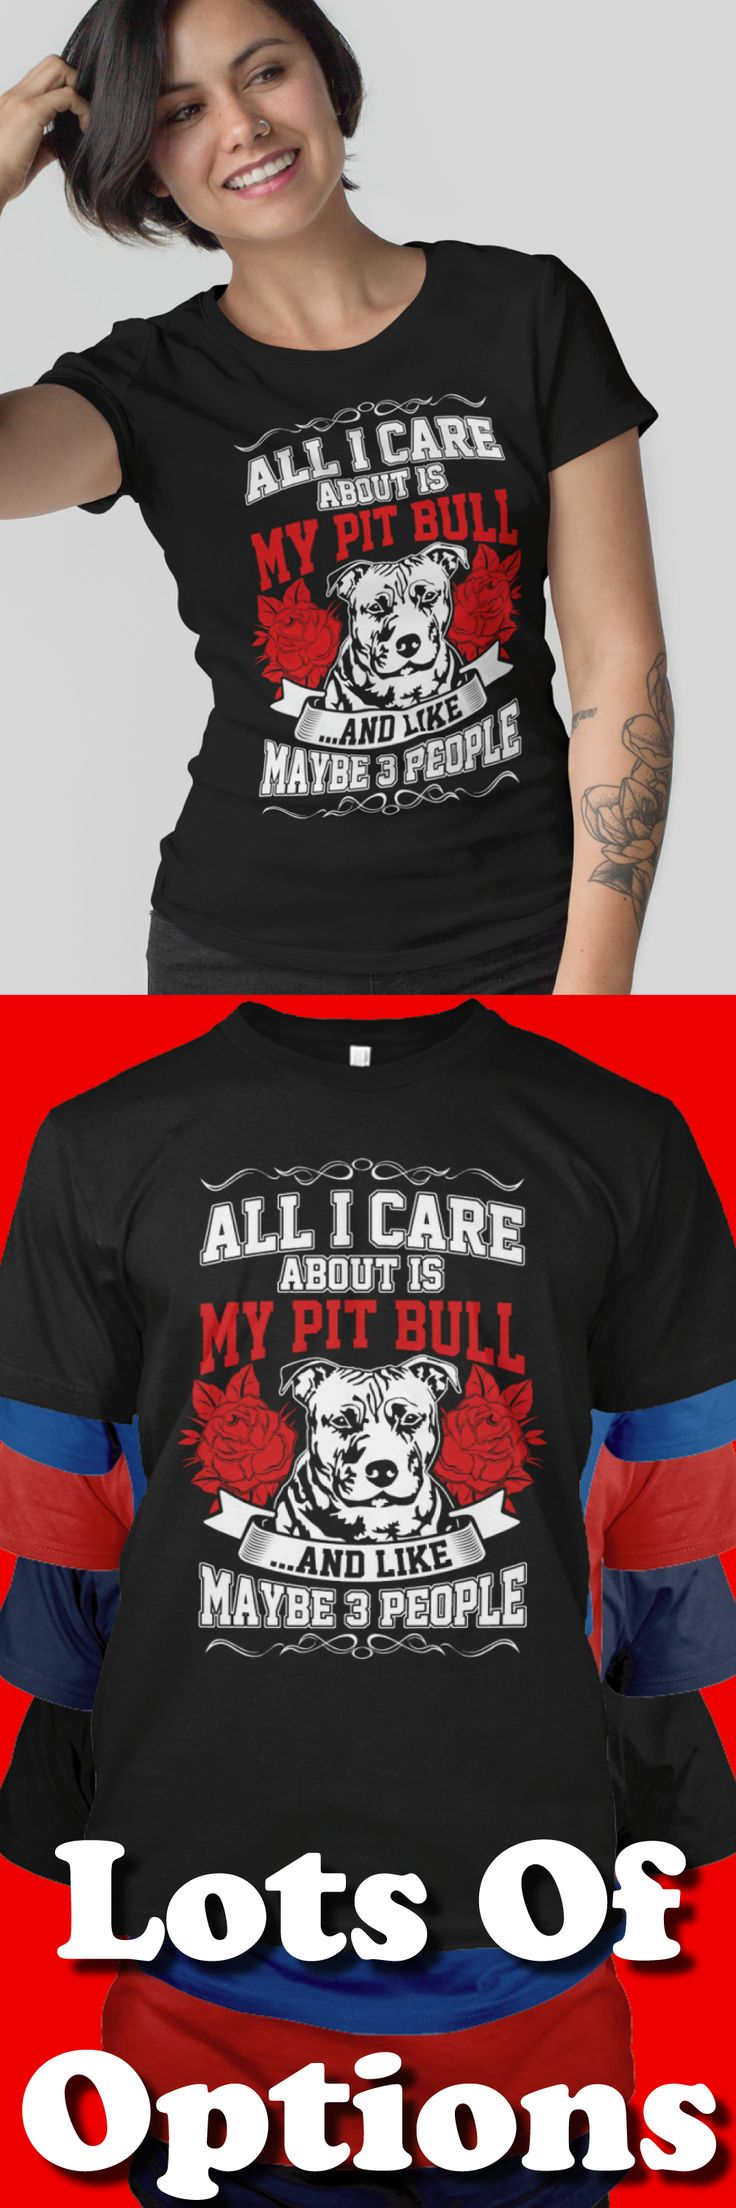 Pit Bull Shirt: Are You A Pit Bull Lover? Love Pit Bulls? Wear Pit Bull Shirts? Great Pit Bull Lovers Gift! Lots Of Sizes & Colors. Like Pit Bull, Pit Bull Mama, Is Your Pit Bull Family? Strict Limit Of 5 Shirts! Treat Yourself & Click Now! https://teespring.com/VM57-439